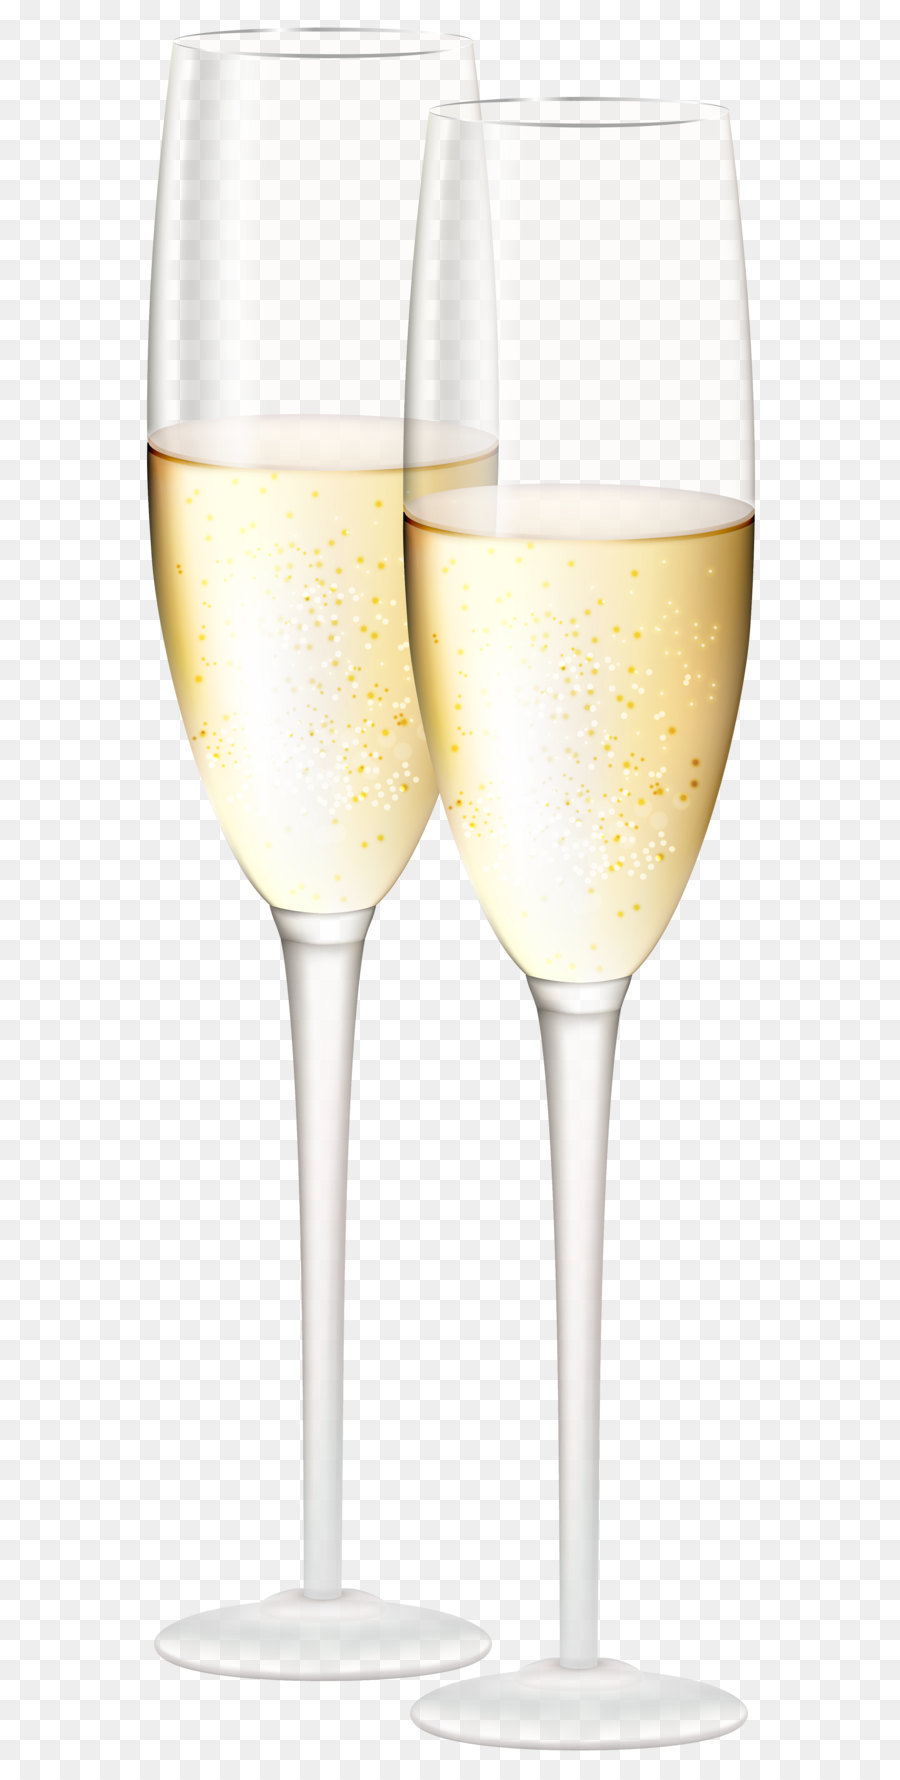 graphic download Champagne glasses clipart no background. Free transparent png download.